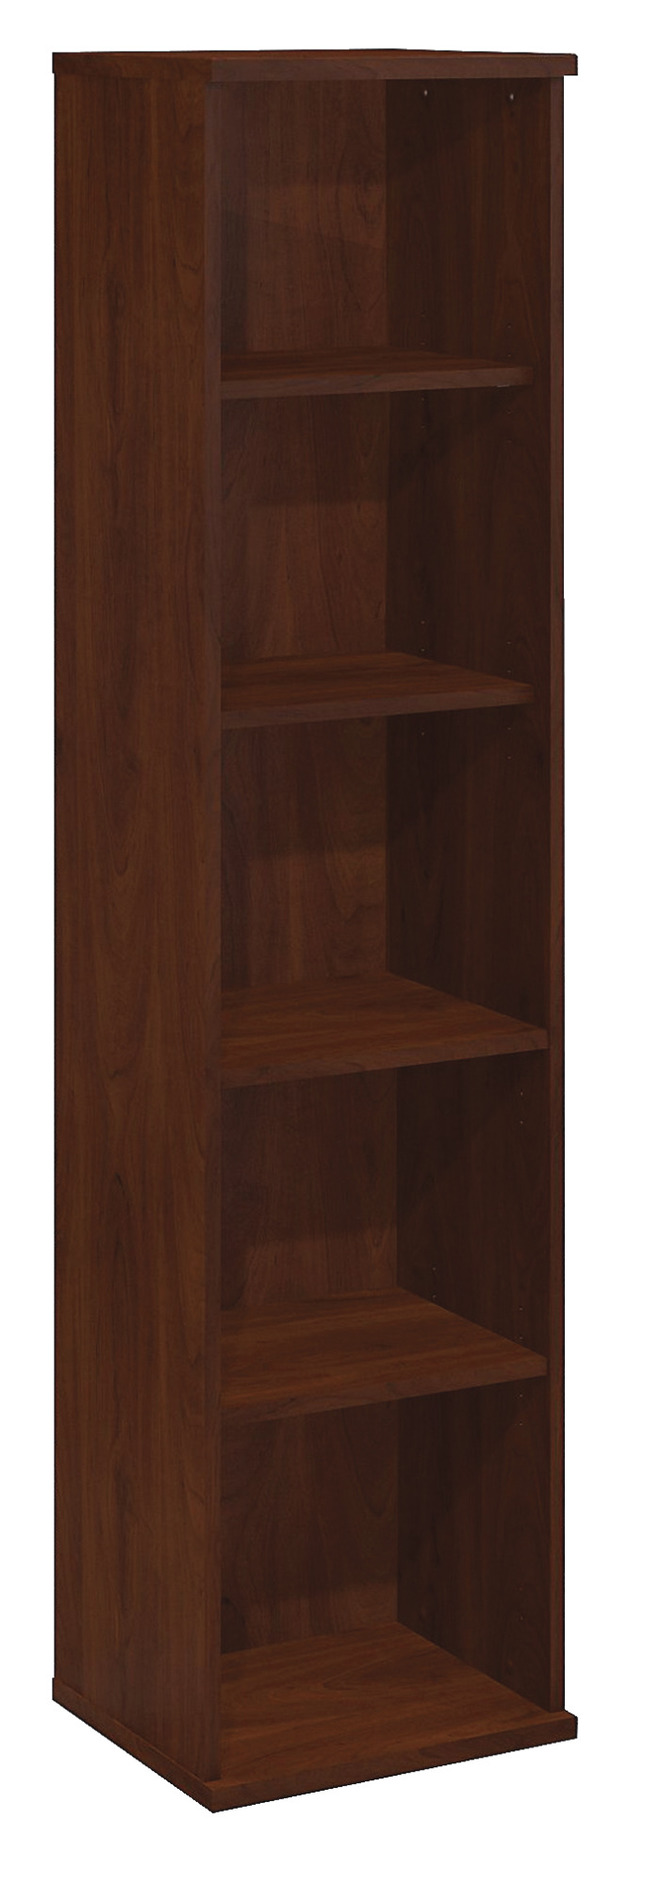 Bookcases Supplies, Item Number 1081837